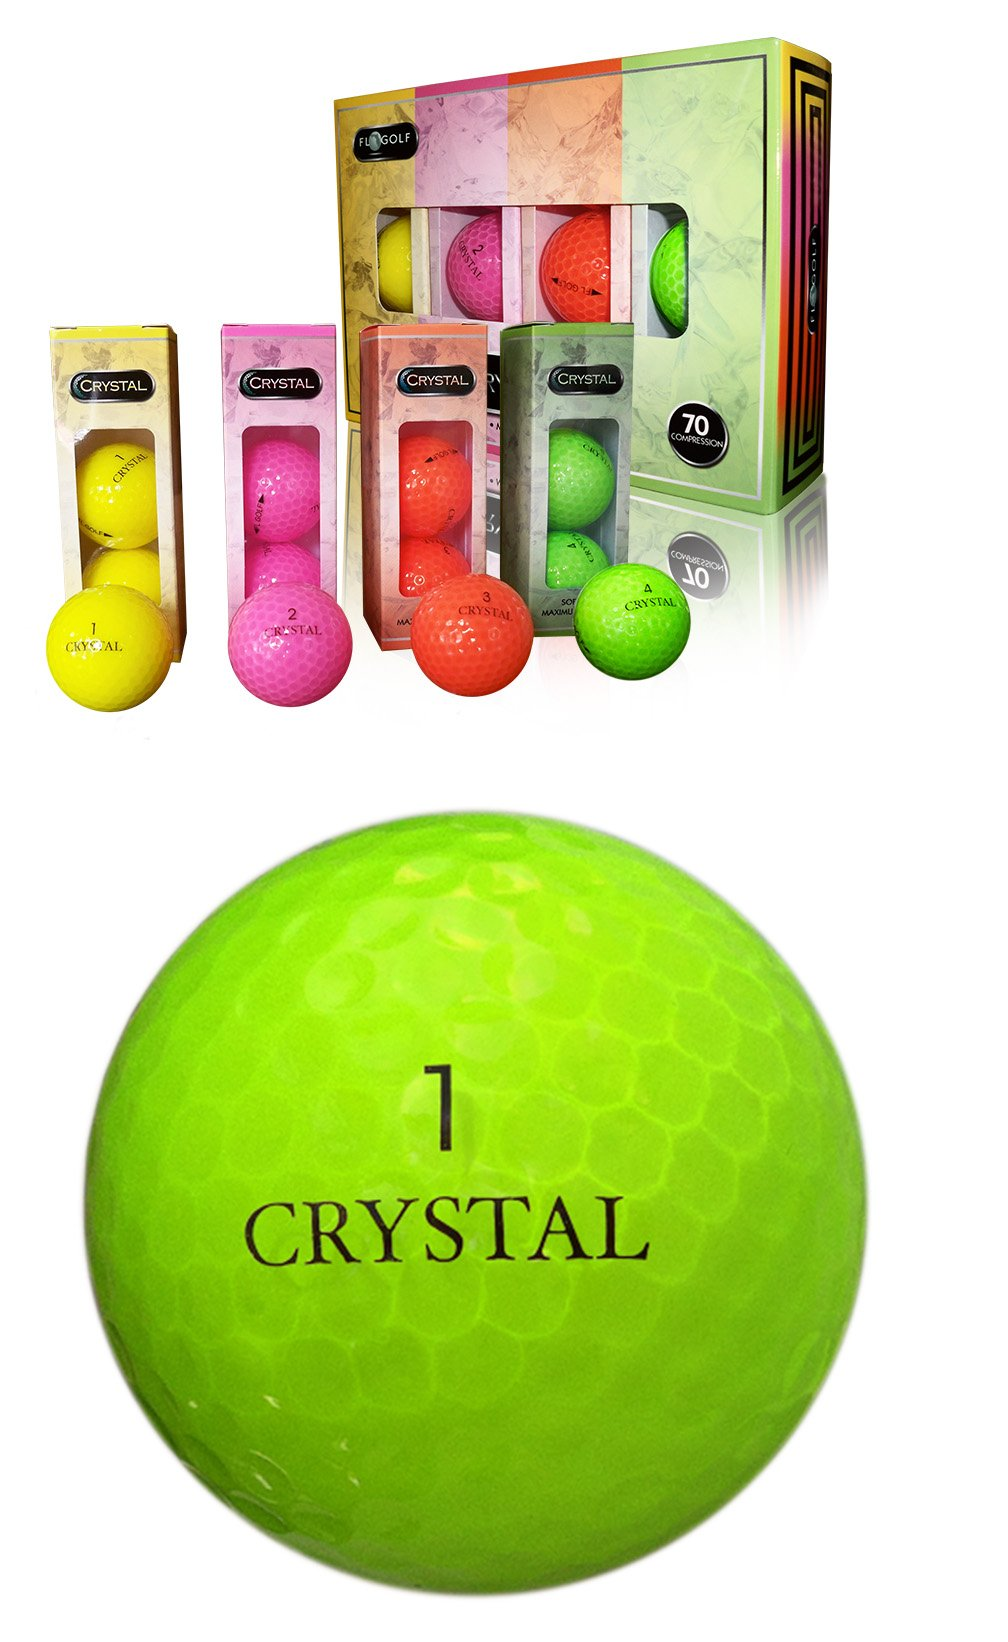 Crystal Golf BallsRainbow 1 Dozen by Crystal by Fl Golf, Inc